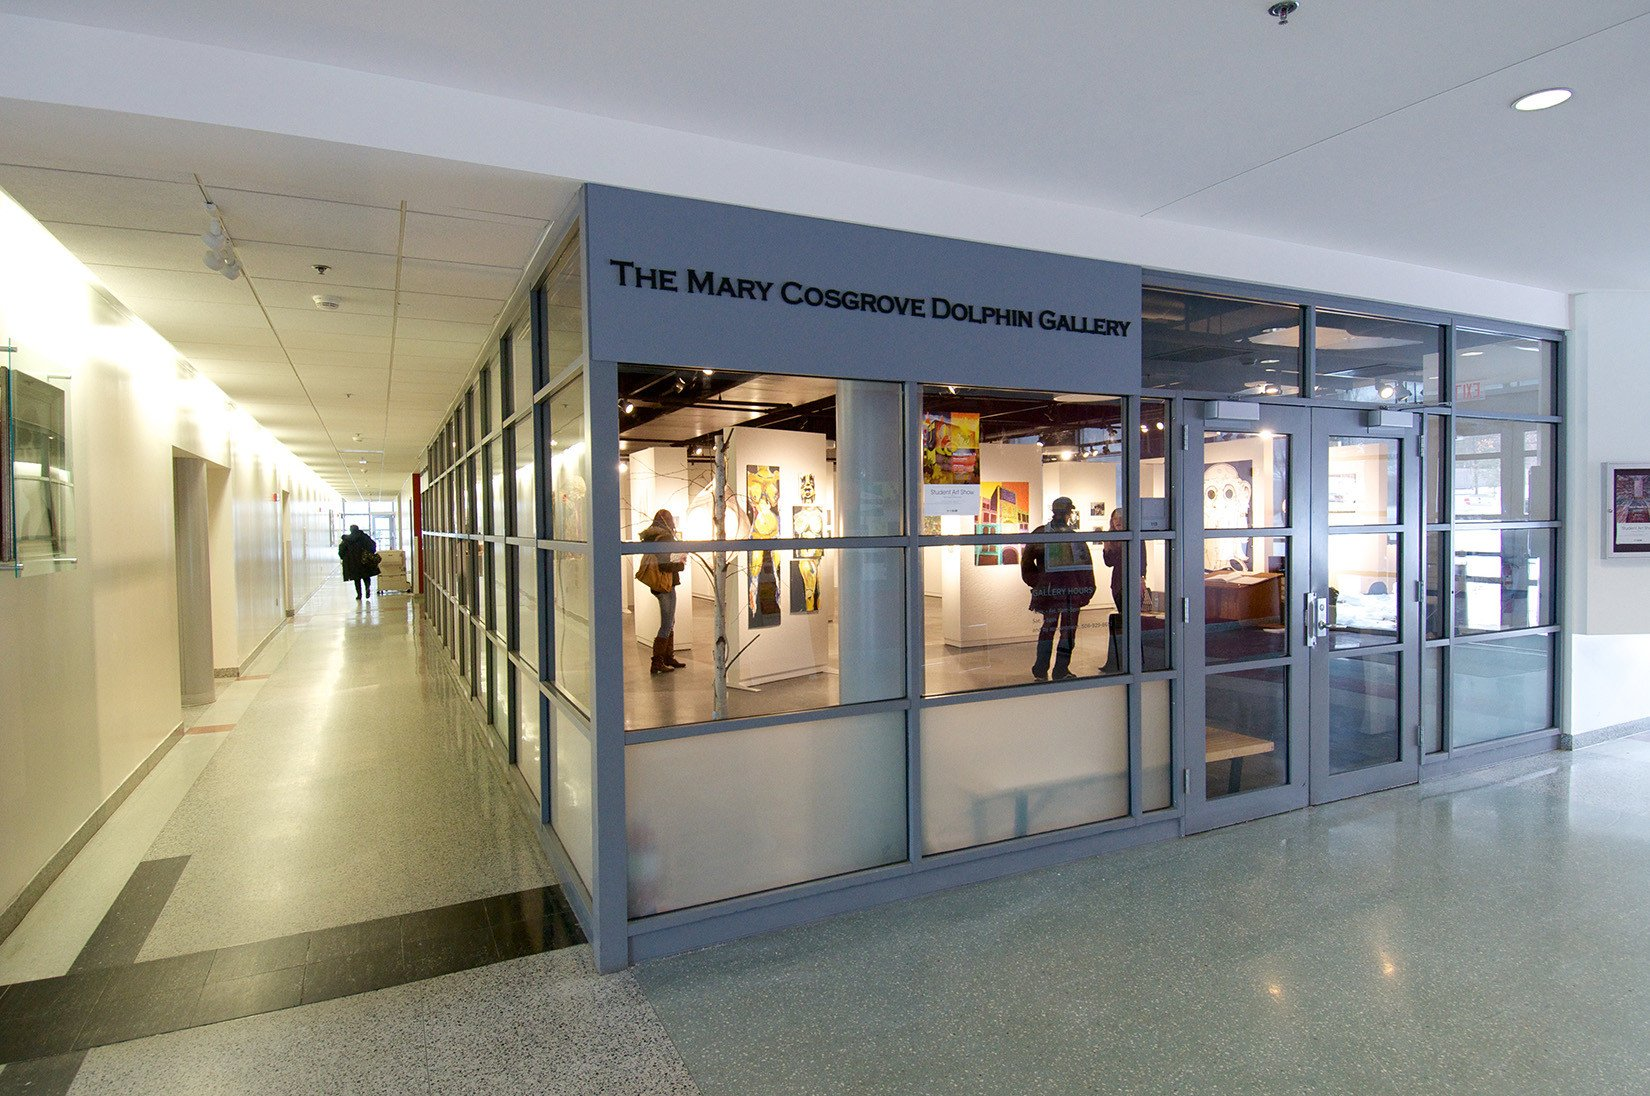 Worcester State University, Mary Cosgrove Dolphin Art Gallery, Entrance